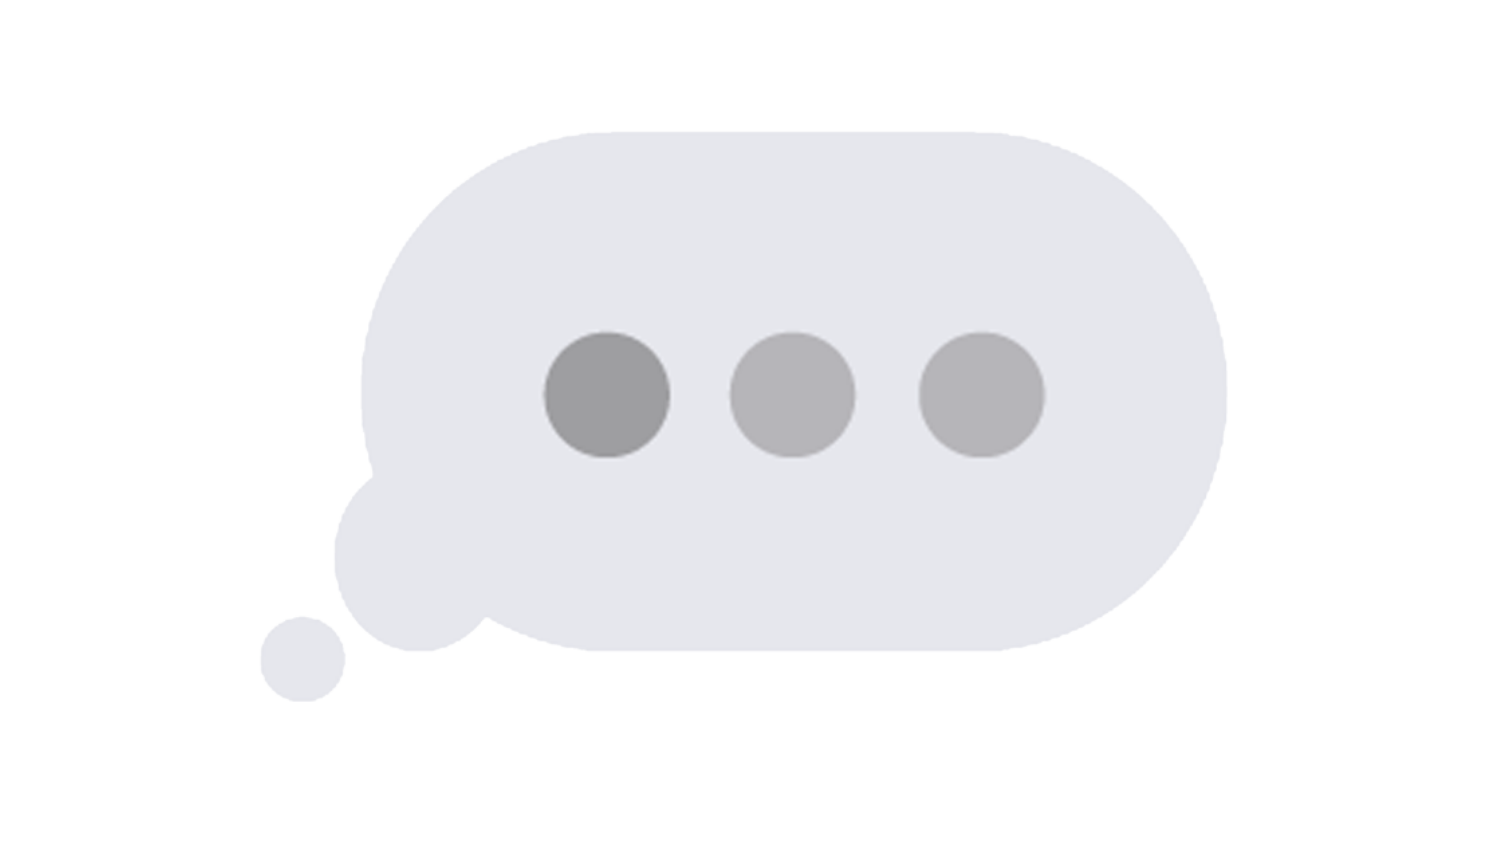 how to disable imessage typing bubble notification on